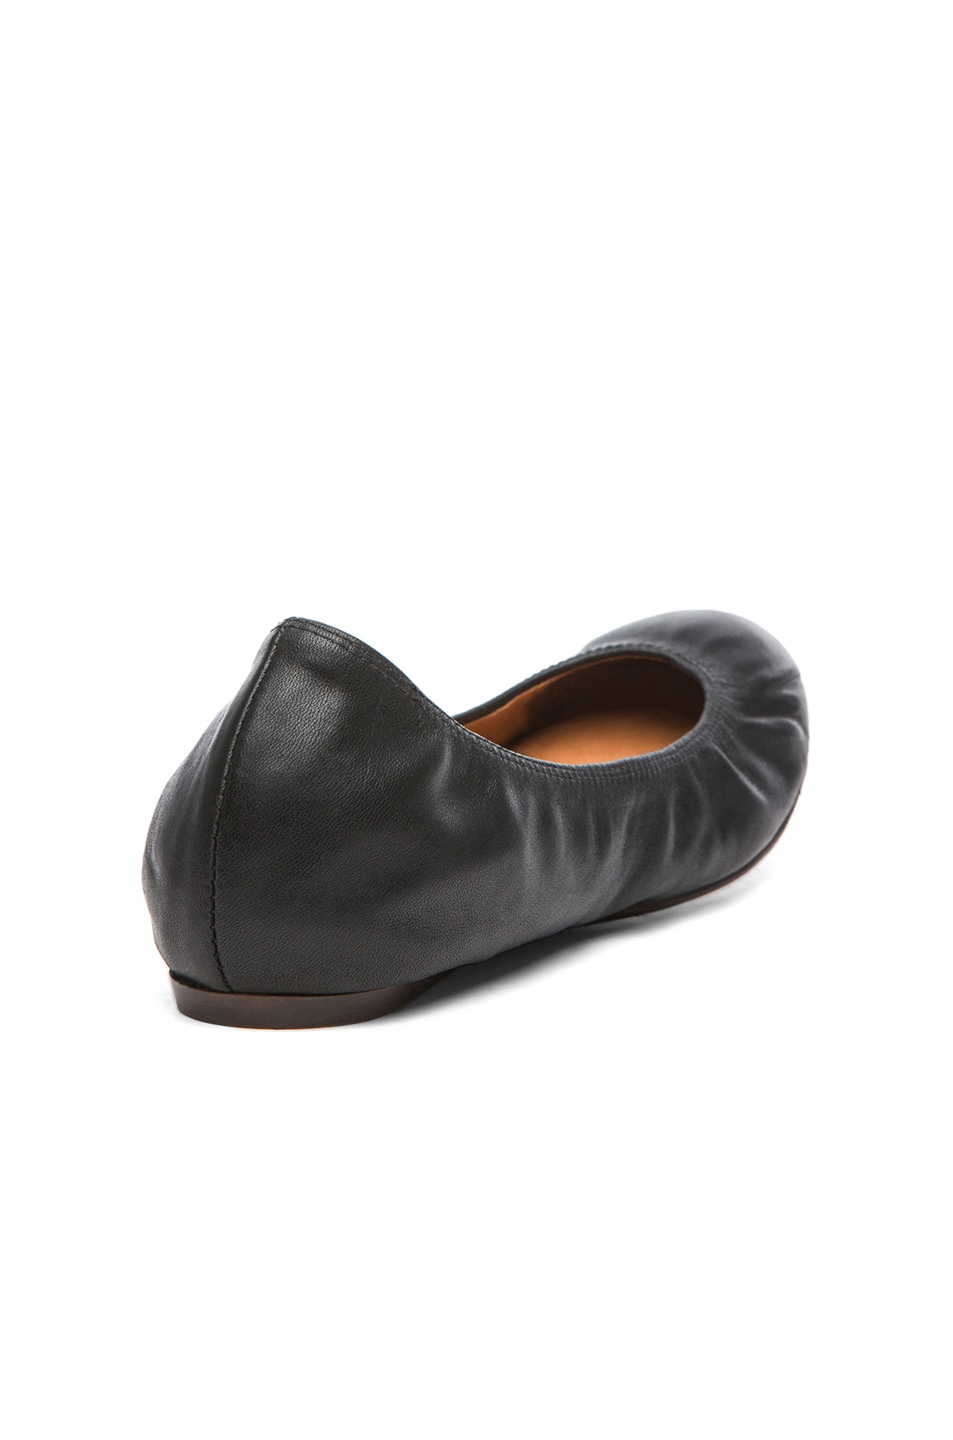 Image 3 of Lanvin Lambskin Leather Ballerina Flats in Noir